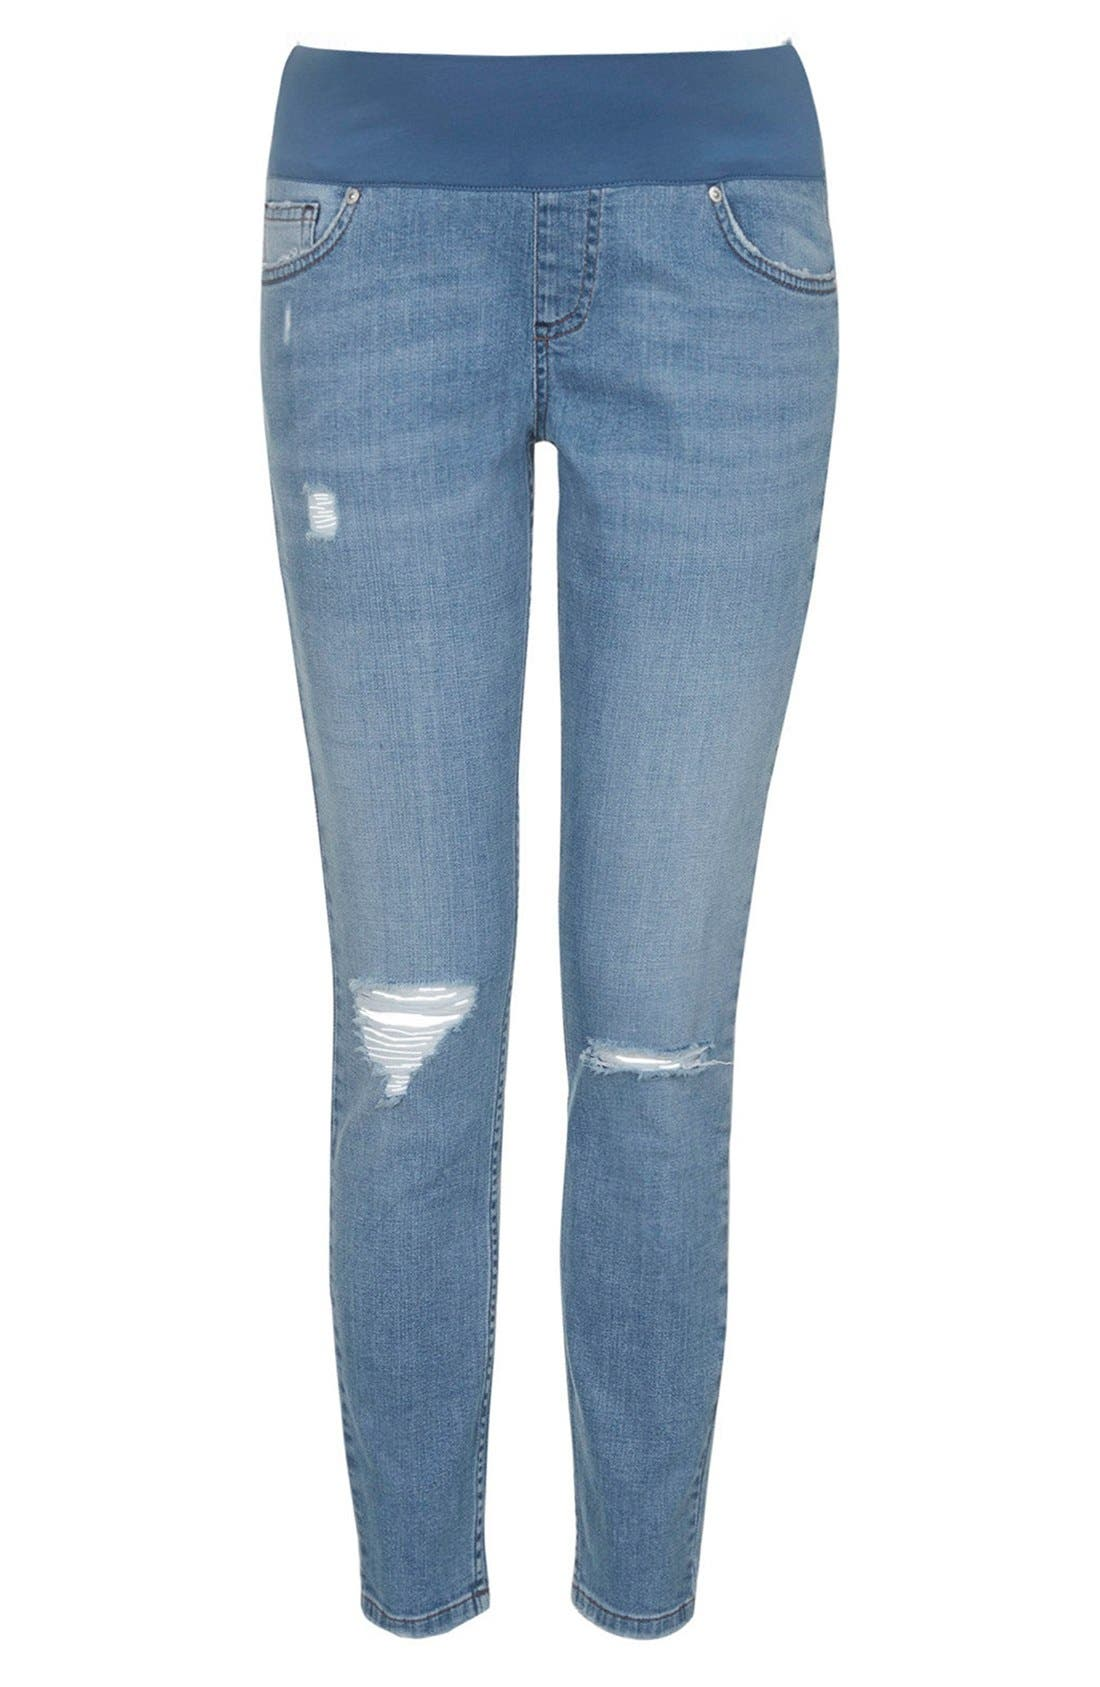 Alternate Image 1 Selected - Topshop Moto Ripped Maternity Skinny Jeans (Light Denim)